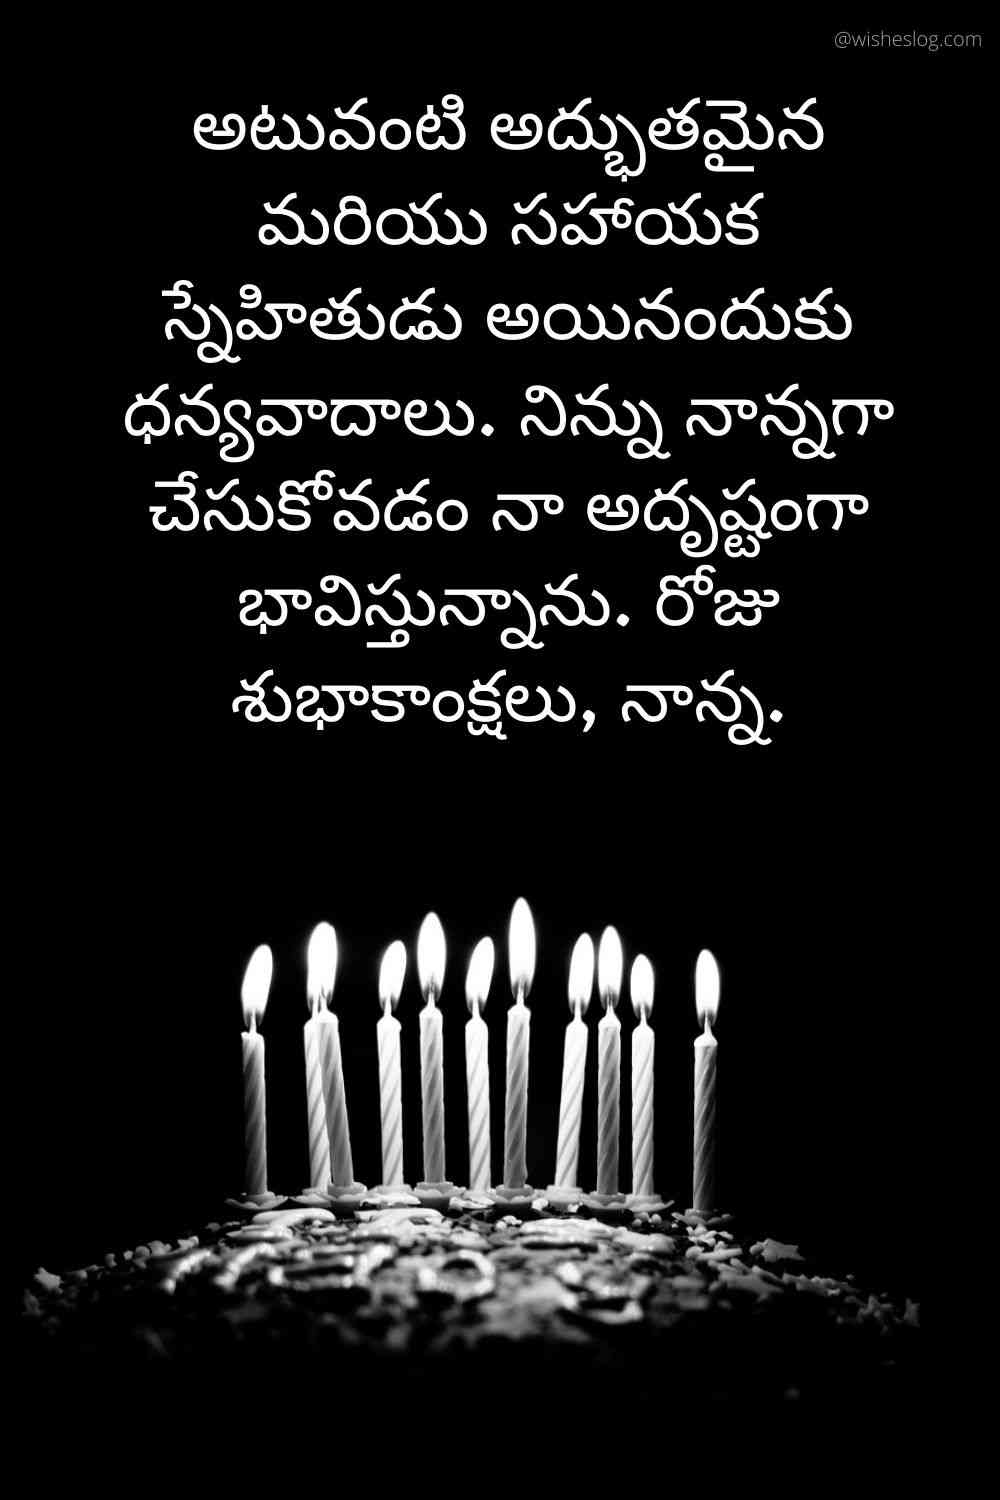 birthday wishes for father in telugu